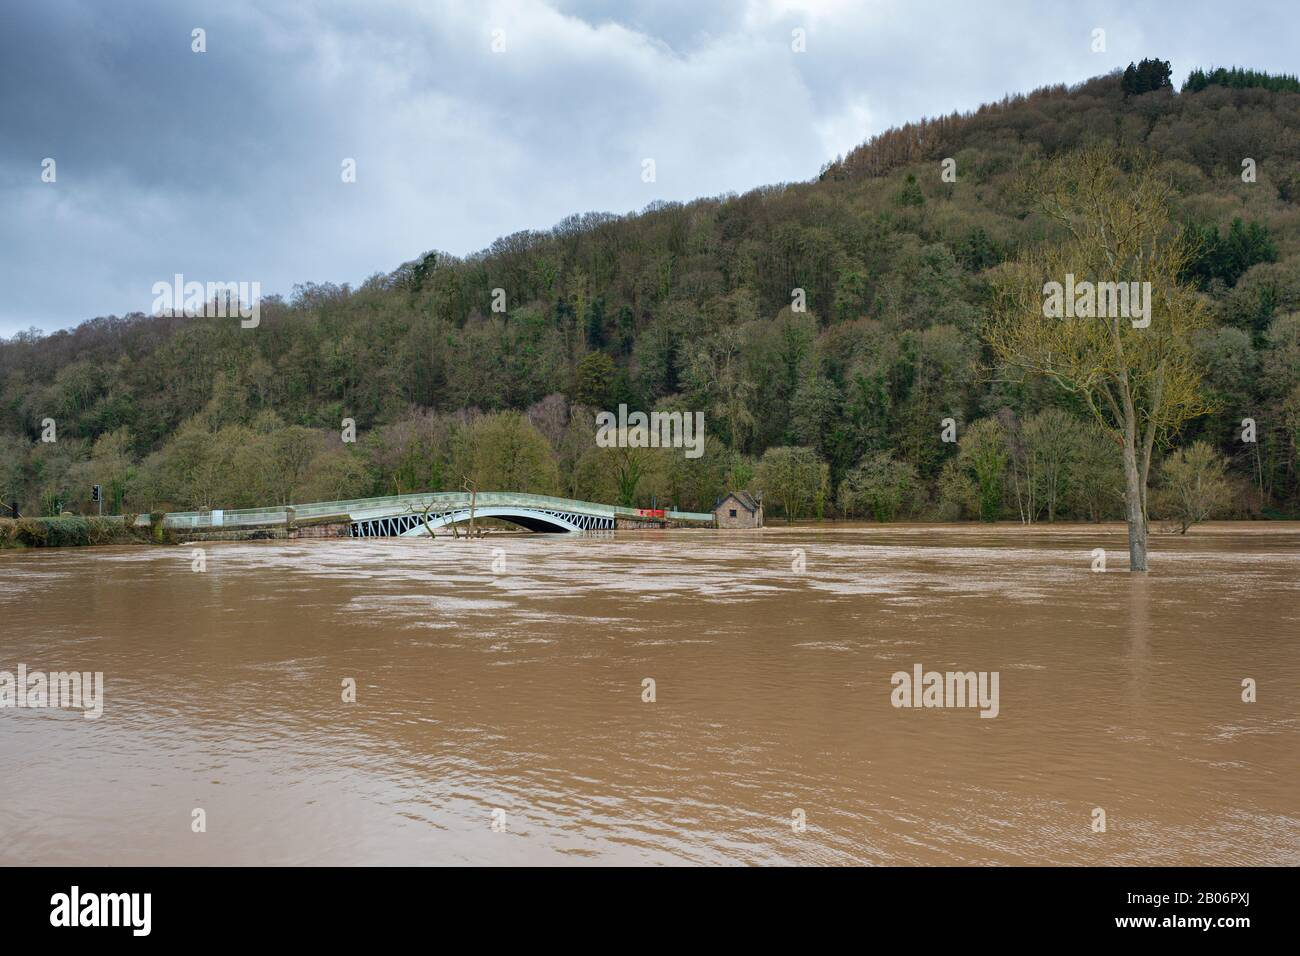 The River Wye in spate at Bigsweir on the Monmouthshire - Gloucestershire border. February 2020. Stock Photo